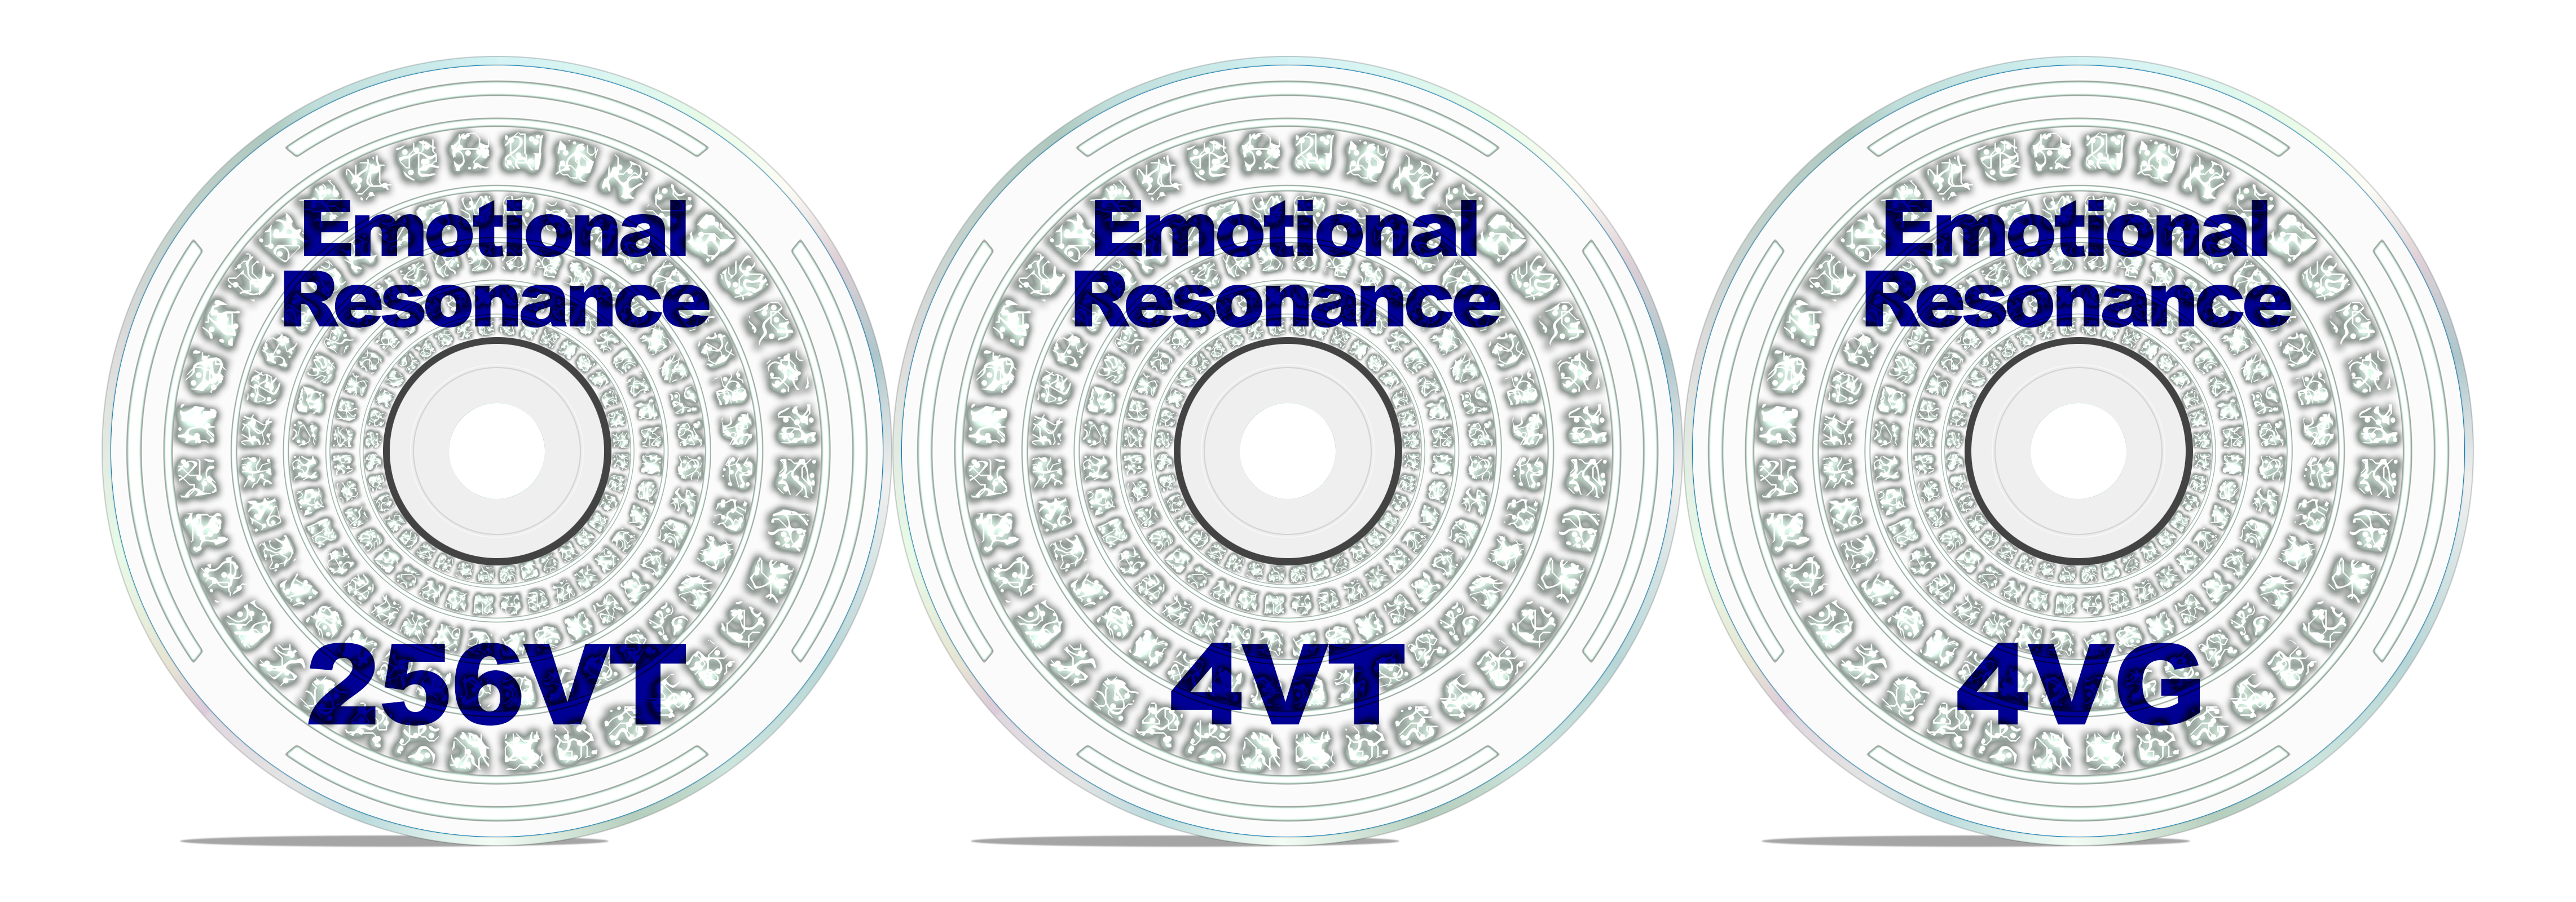 Emotional Resonance